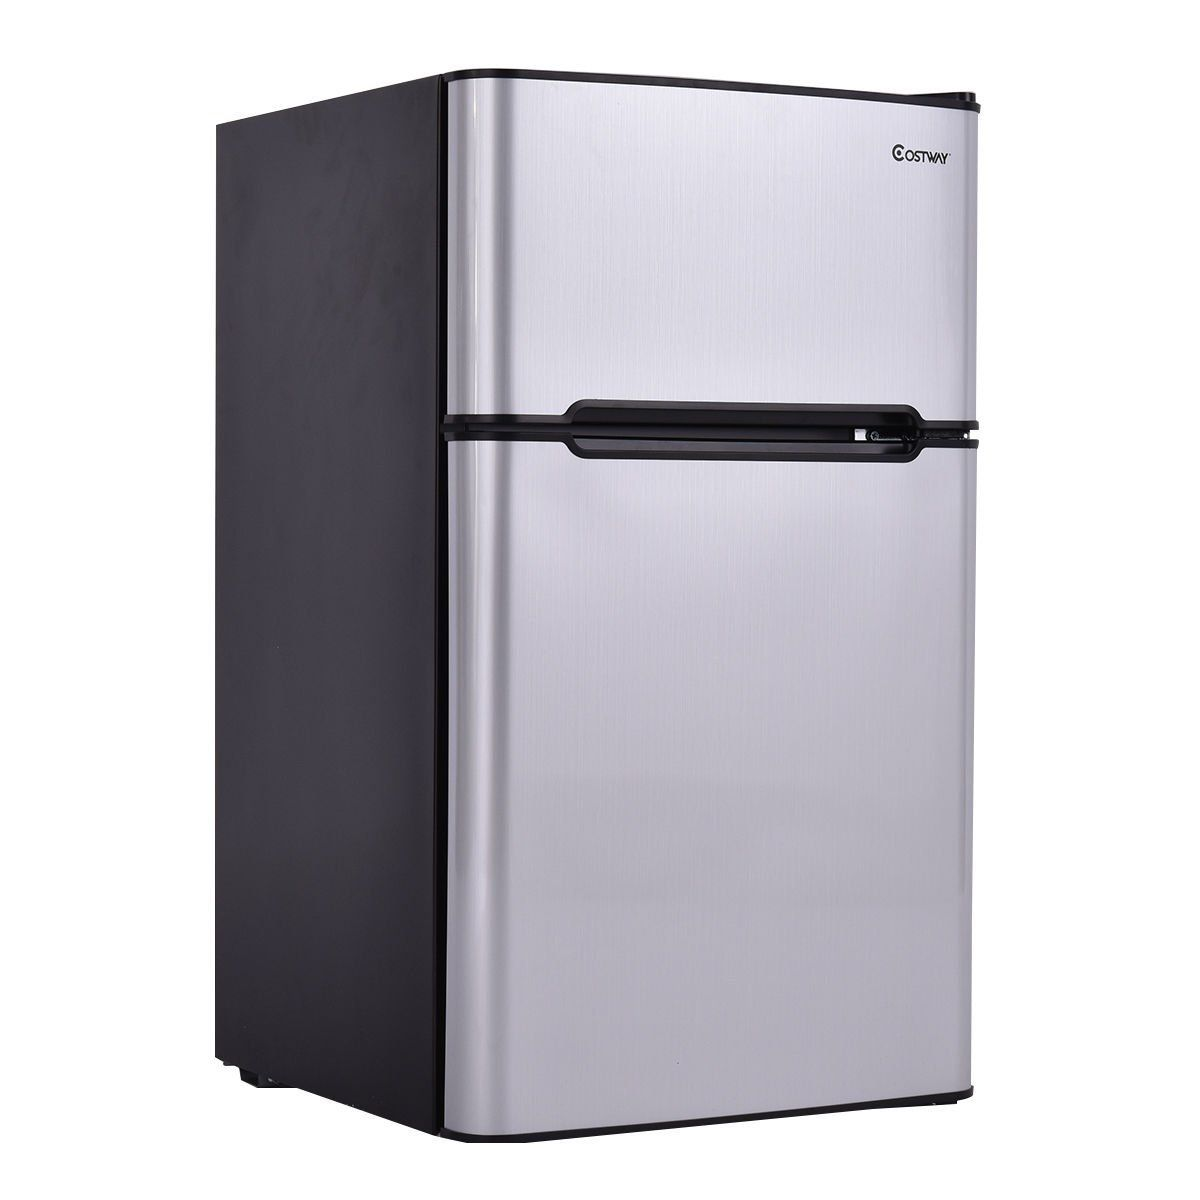 Amazon Com Costway 2 Door Compact Refrigerator 3 2 Cu Ft Unit Small Freezer Cooler Fridge Compact Refrigerator Stainless Steel Refrigerator Best Refrigerator